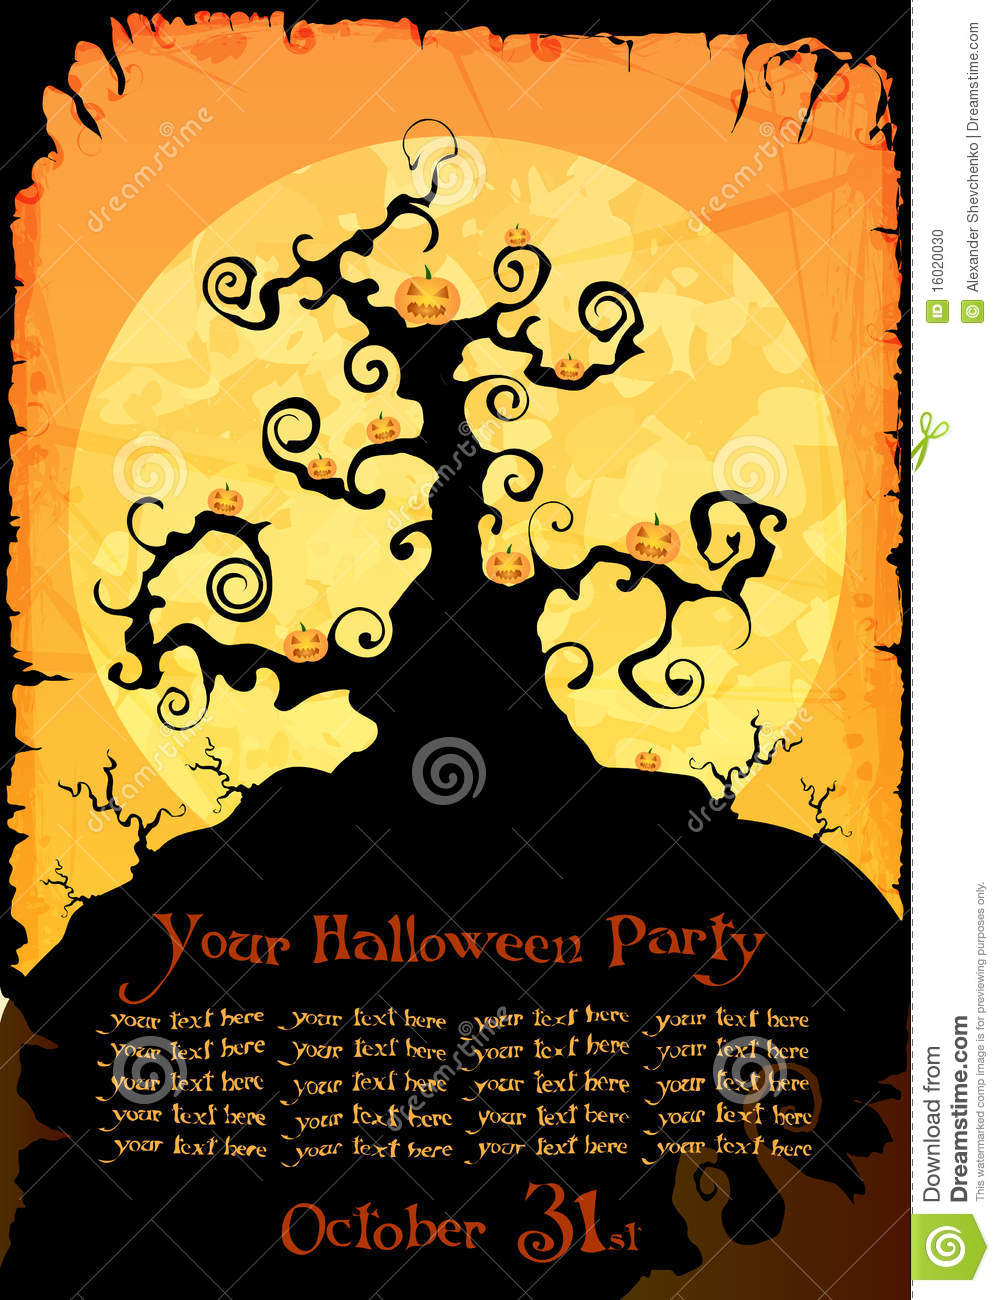 Halloween Party Invitation Or Background